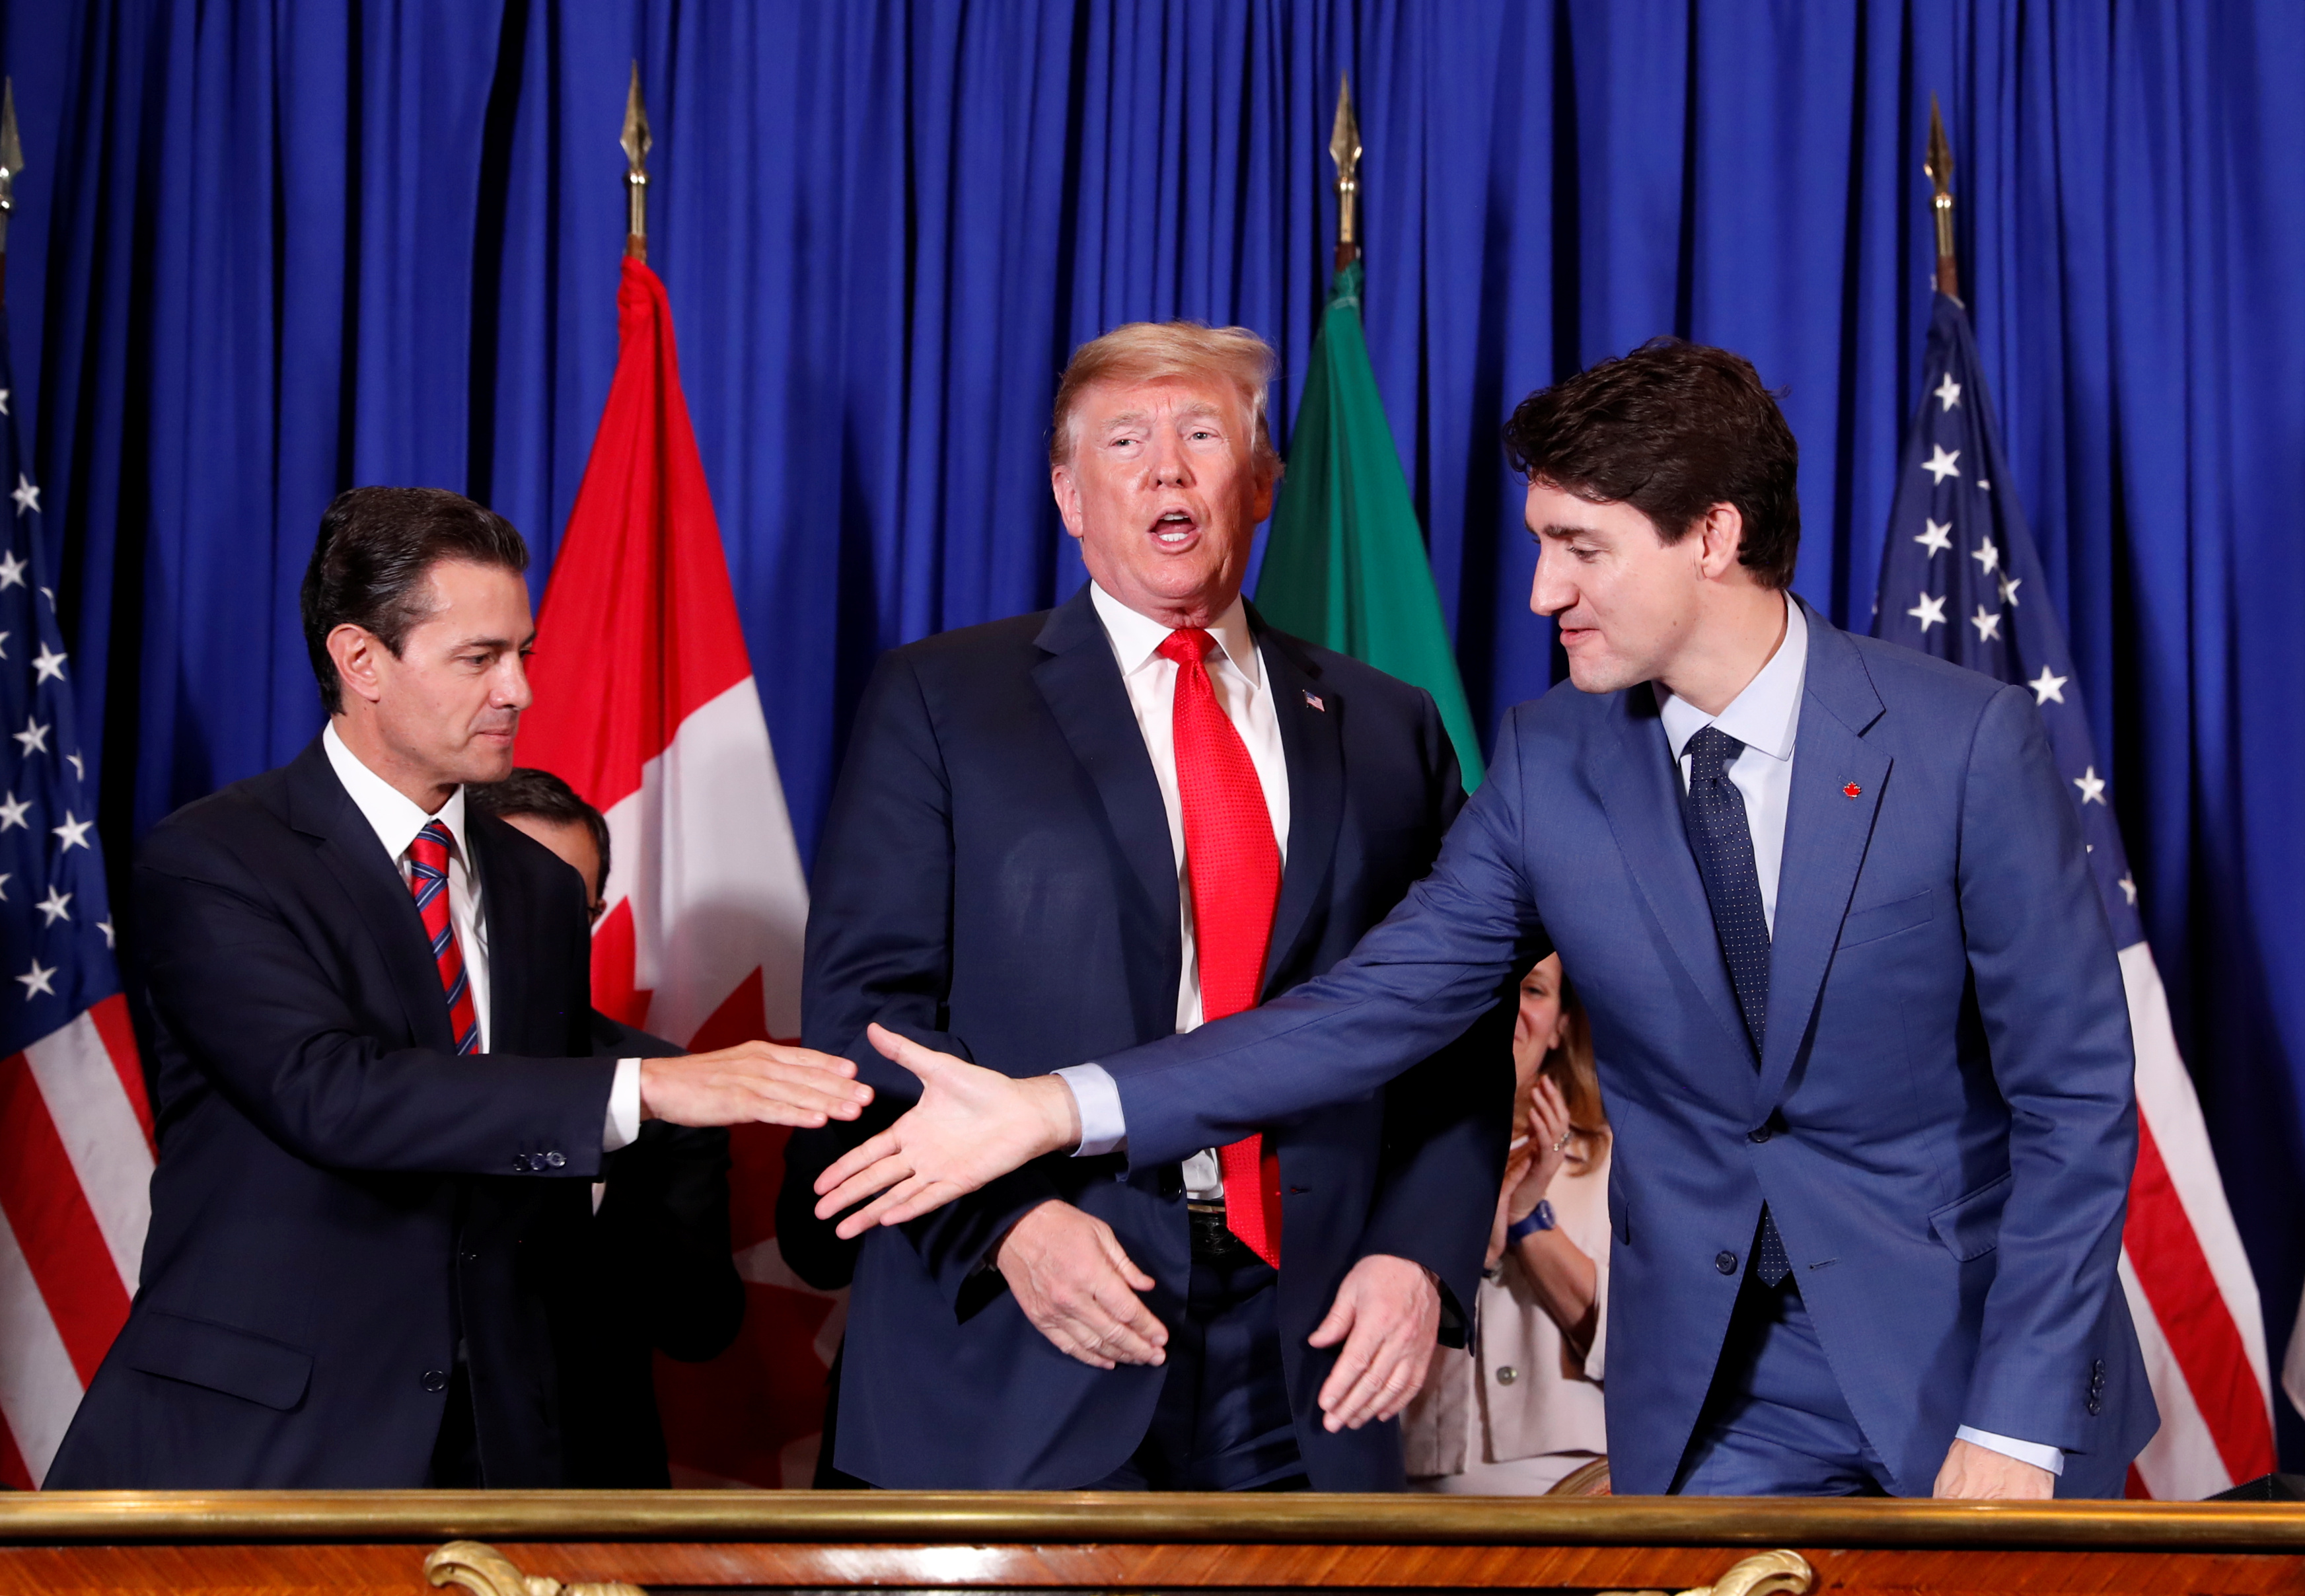 U.S. President Donald Trump, Canada's Prime Minister Justin Trudeau and Mexico's President Enrique Pena Nieto attend the USMCA signing ceremony before the G20 leaders summit in Buenos Aires, Argentina November 30, 2018. REUTERS/Kevin Lamarque - RC16F417B0A0